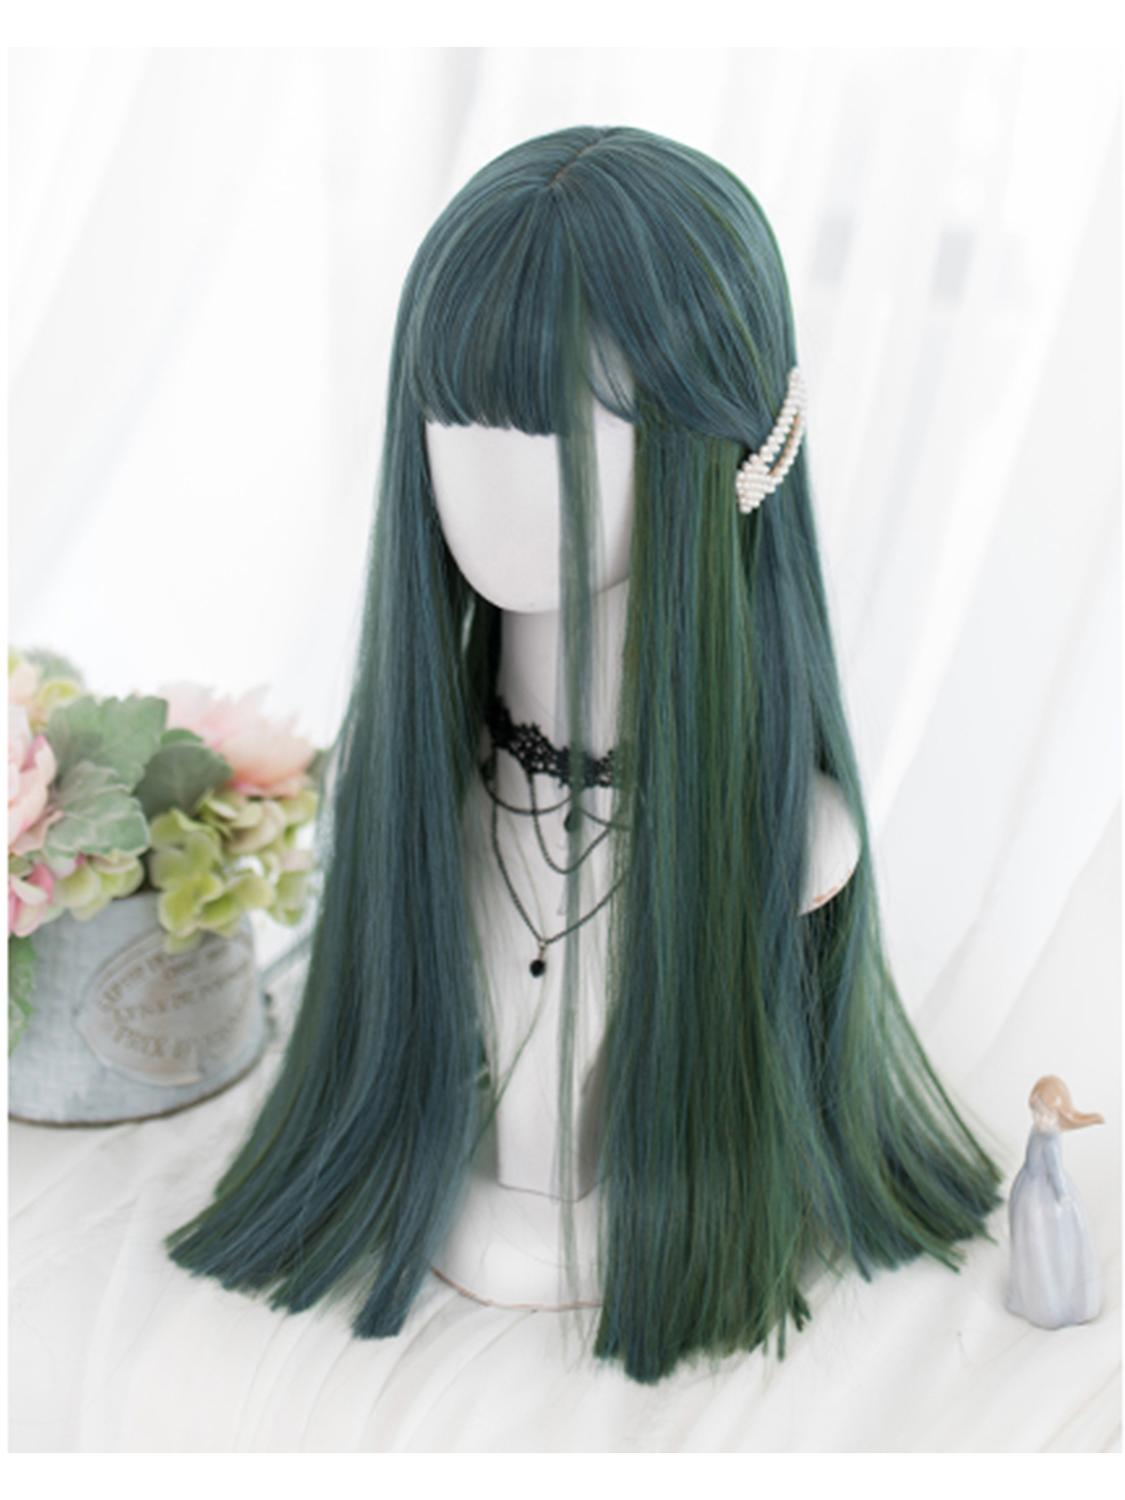 Cosplaysalon H762464L Lolita 60CM Long Straight Mixed Green Blue Ombre Hair Bangs Cute Party Synthetic Cosplay Wig